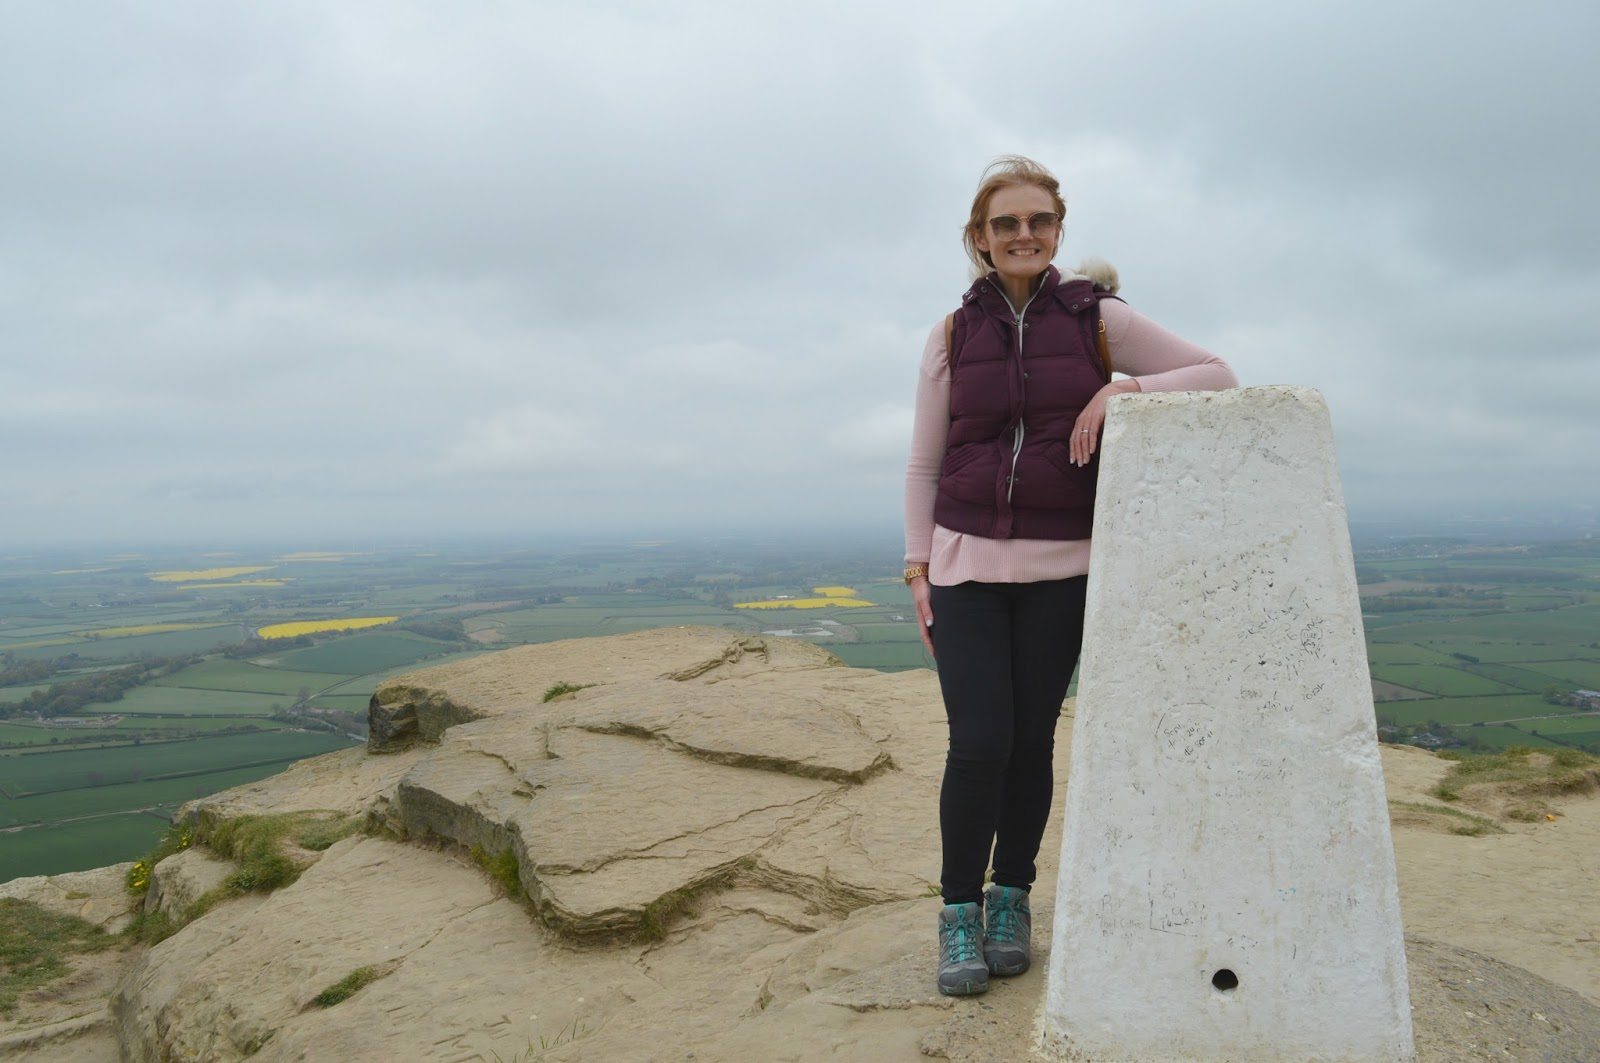 Climbing Roseberry Topping, North Yorkshire